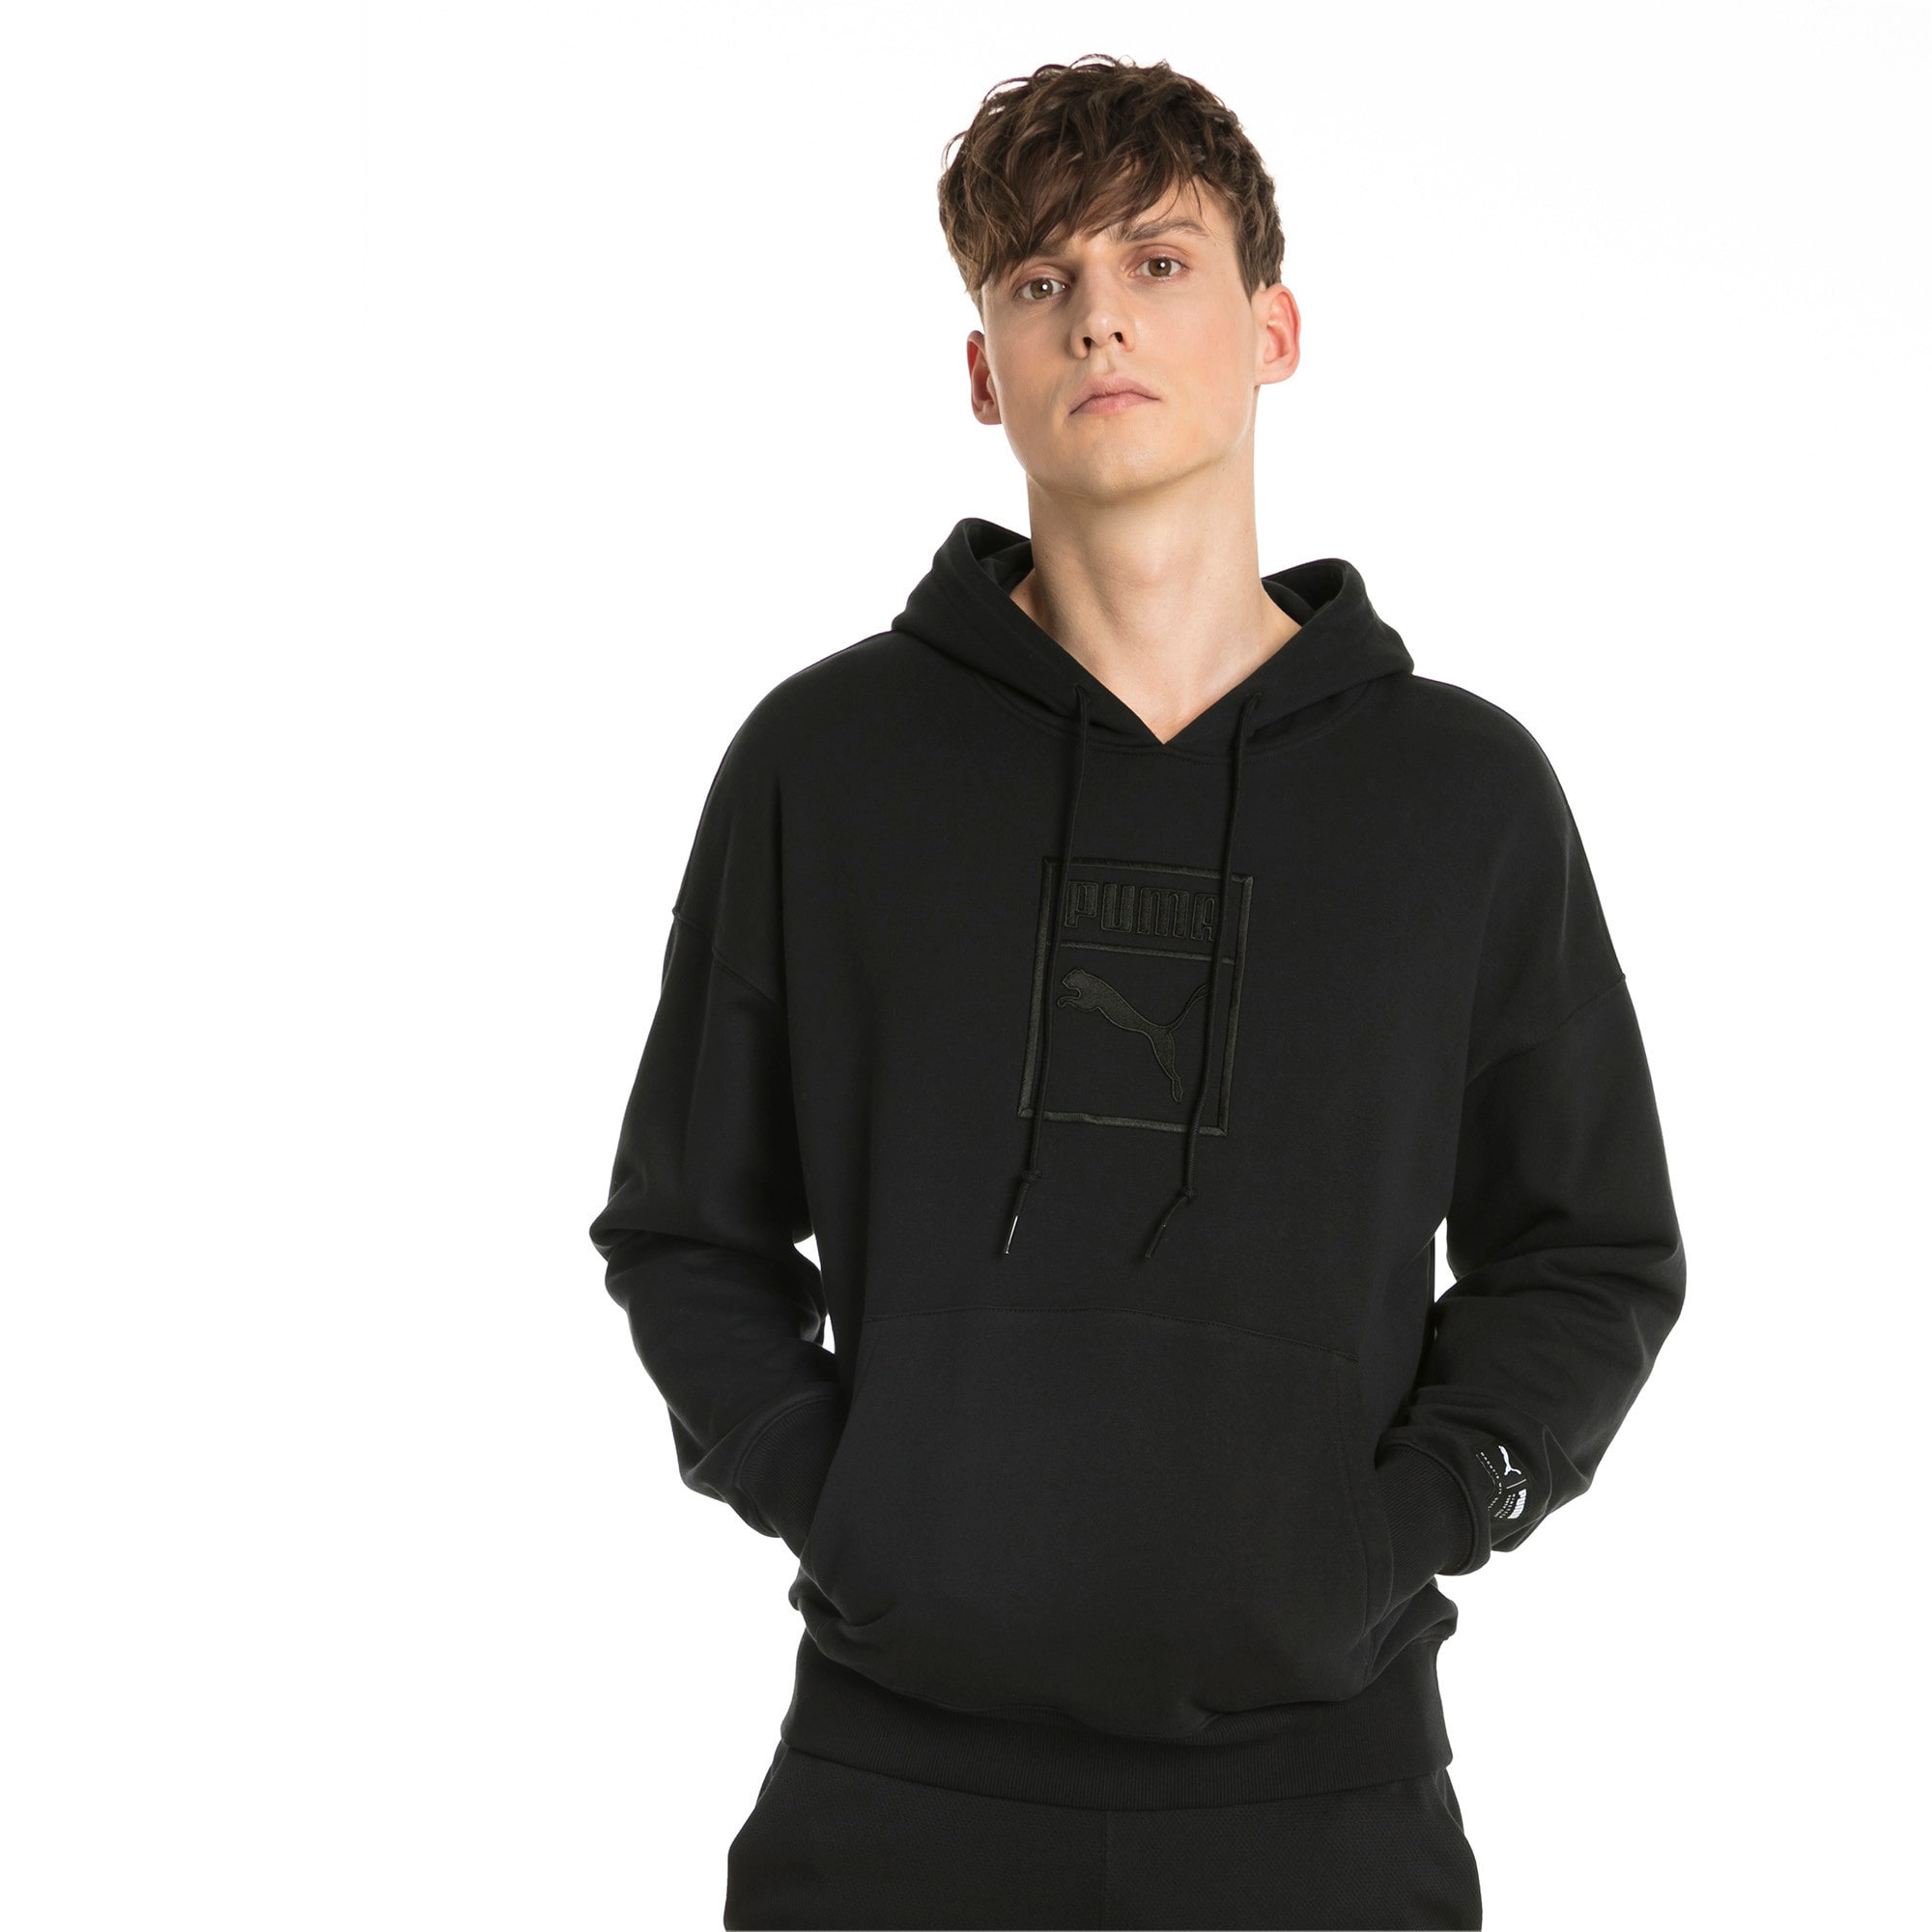 Downtown Oversize Men's Hoodie, Puma Black, large